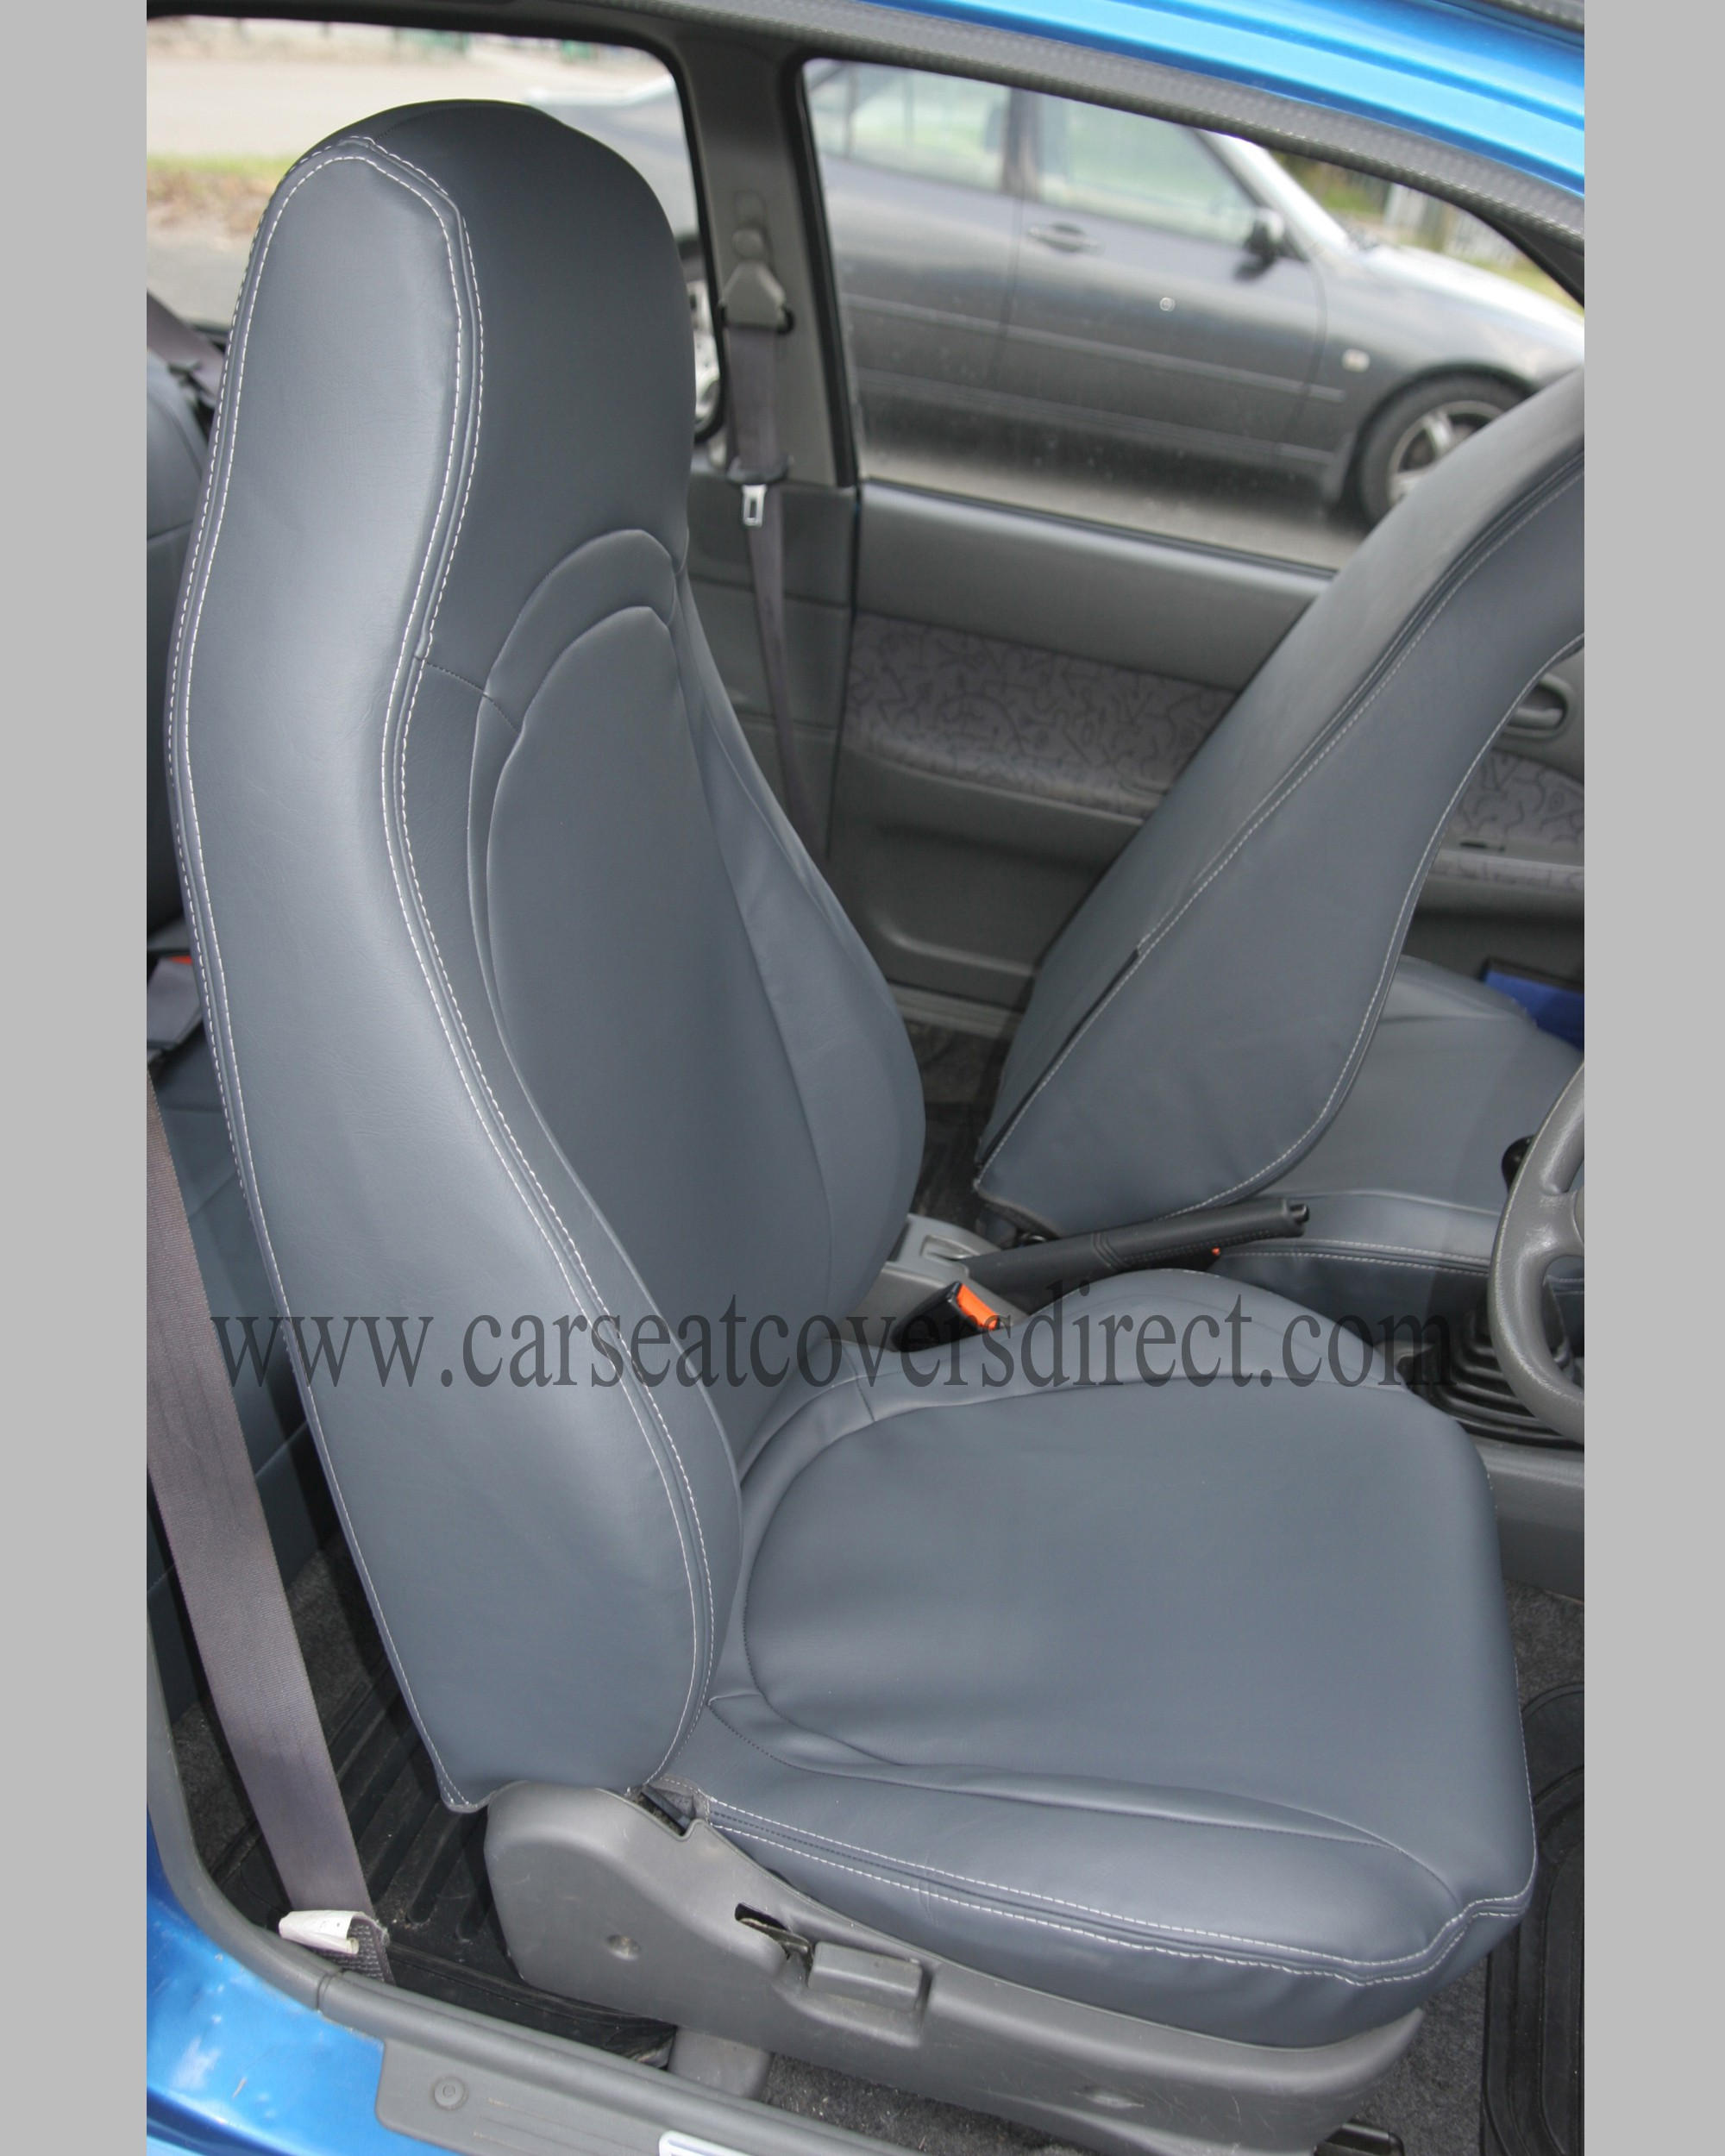 Suzuki Swift Custom Car Seat Covers (2000-2004)